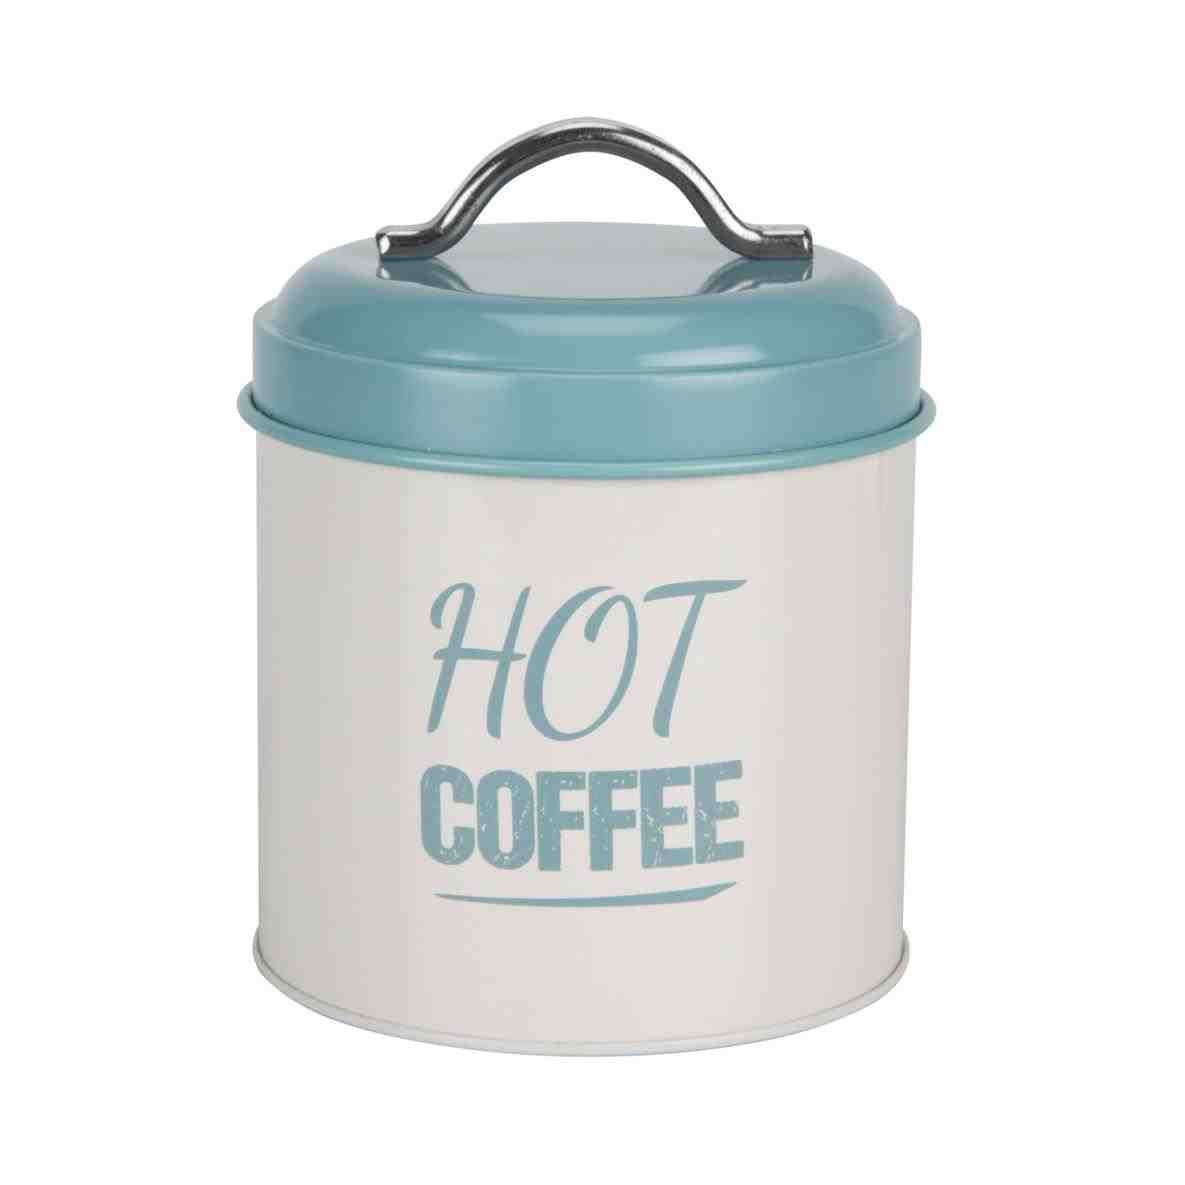 New cream tea and coffee canisters at temasistemi.net | Coffee ...